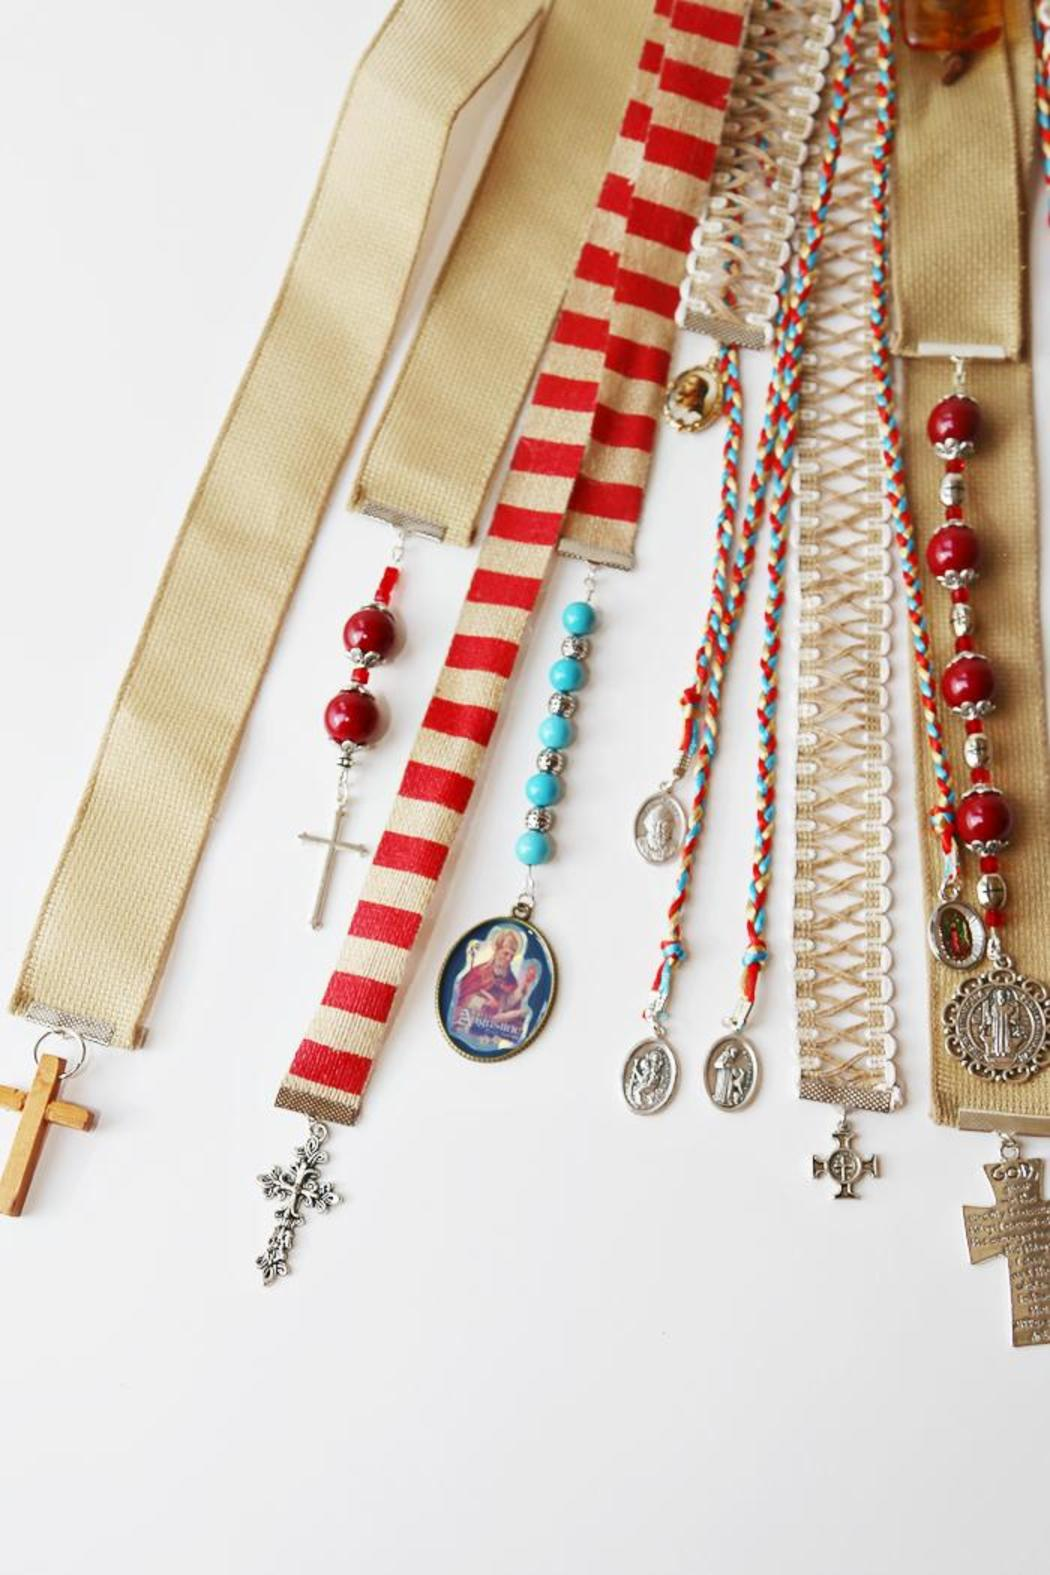 Social Gifts u0026 Gems Religious Door Blessing - Side Cropped Image & Social Gifts u0026 Gems Religious Door Blessing from Rio Grande Valley ...